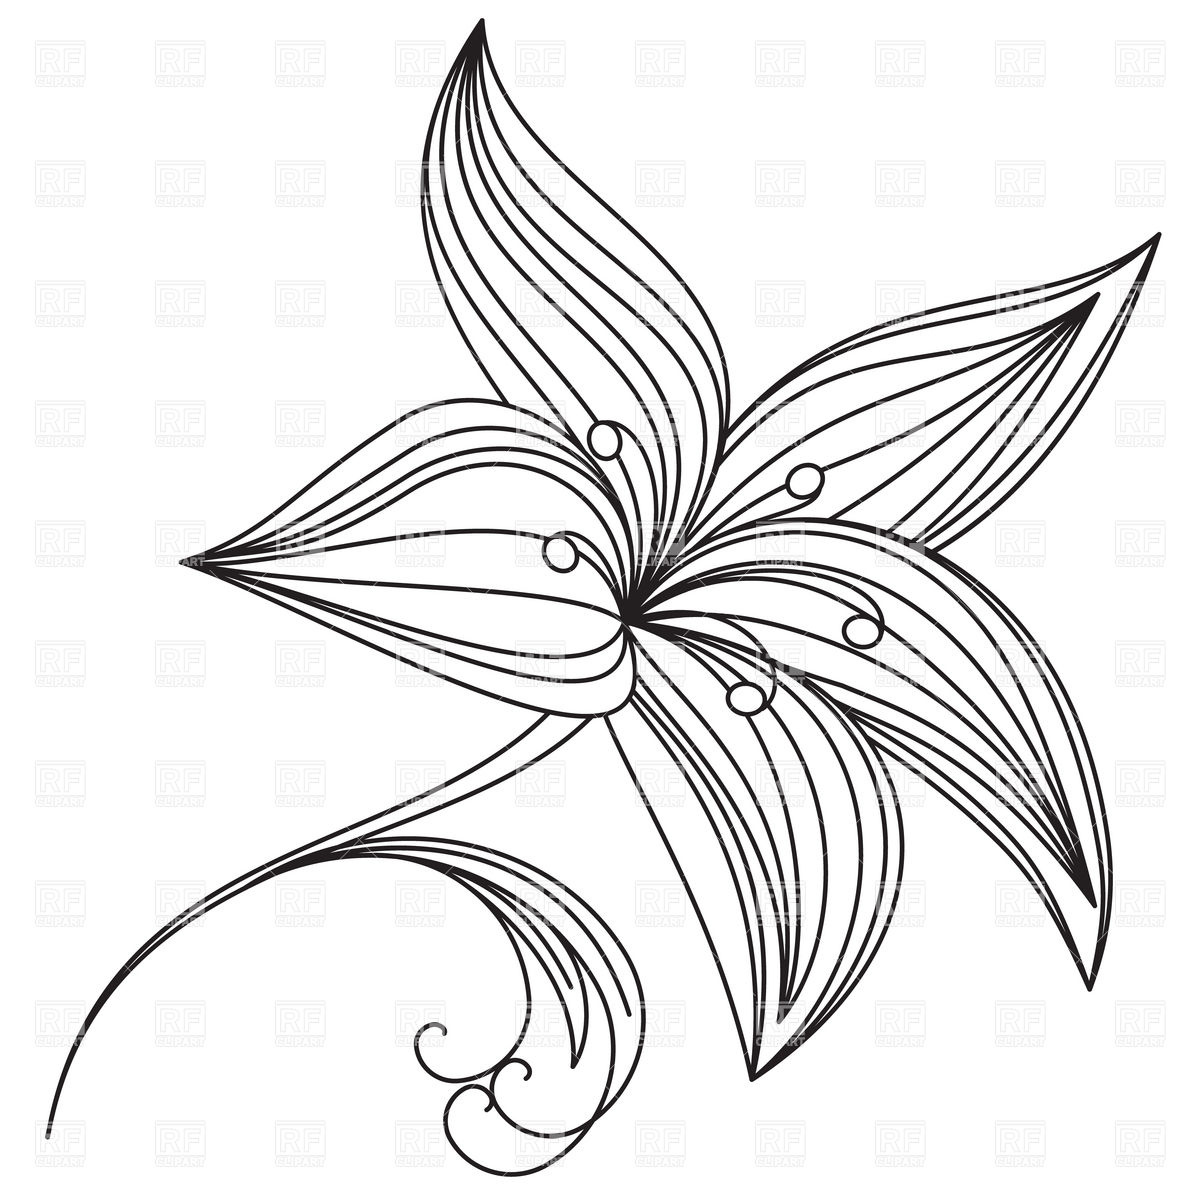 White Lily Flower Drawing At Getdrawings Free For Personal Use